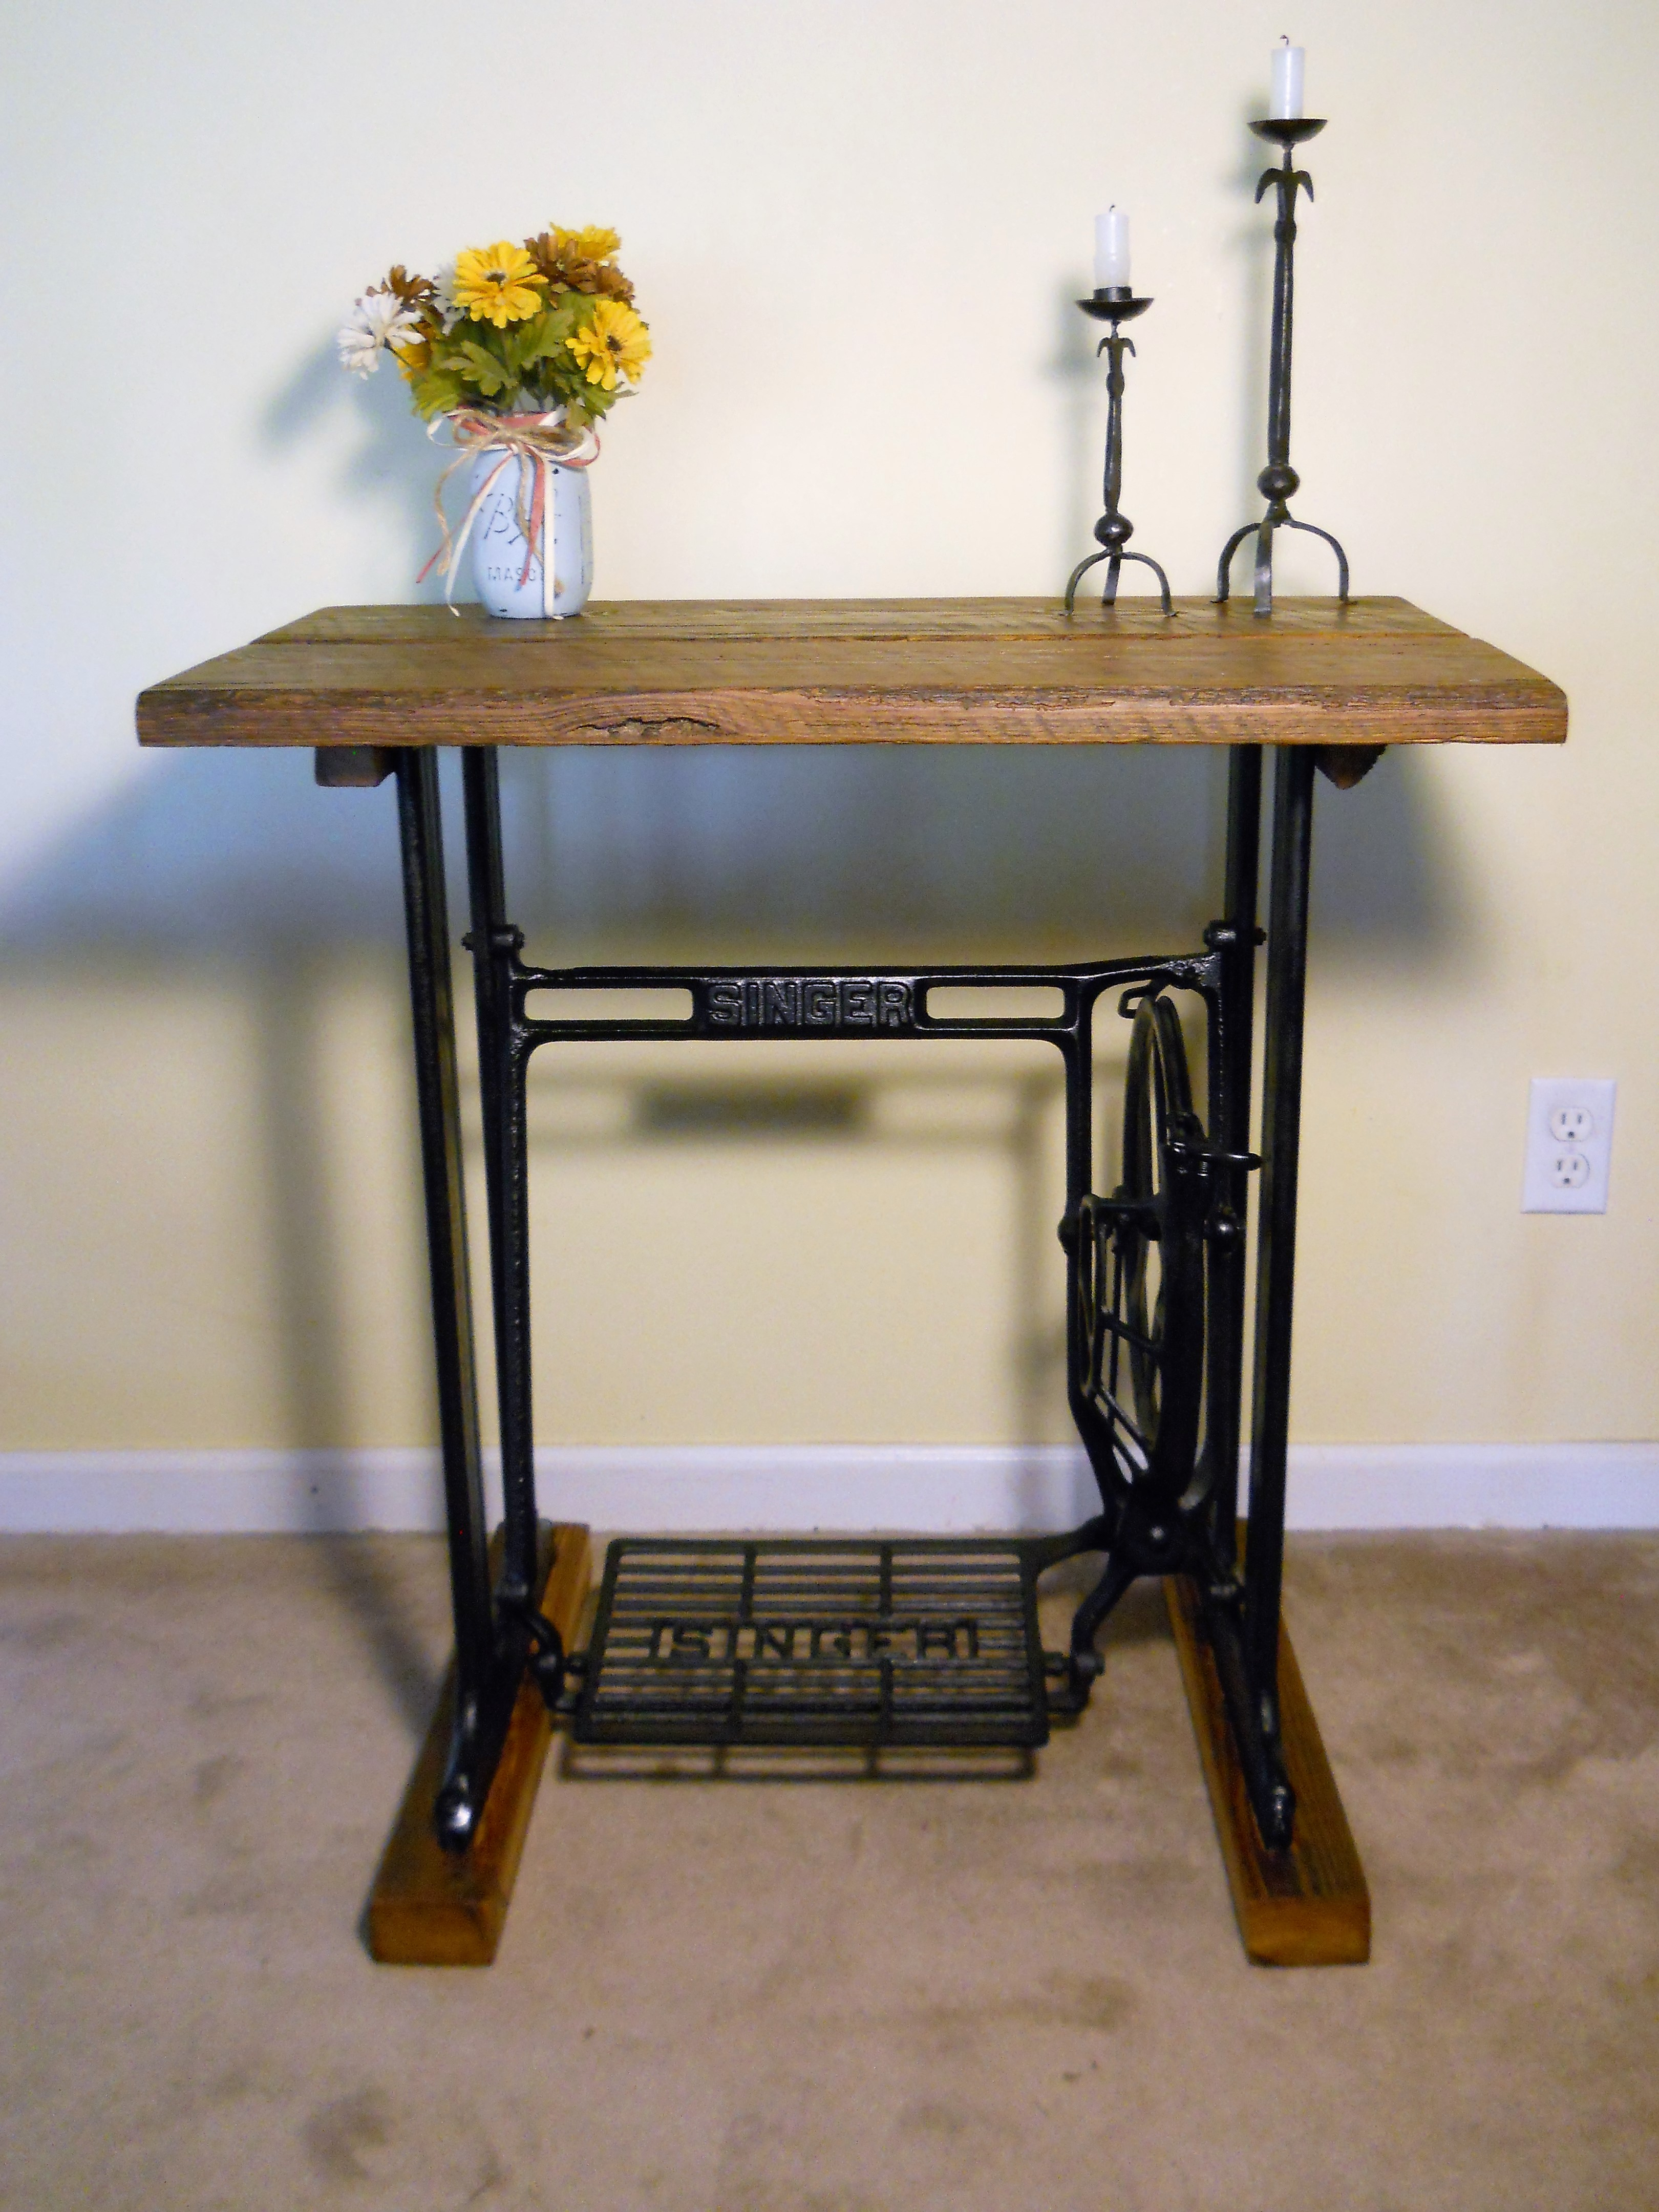 1902 Singer Sewing Machine Table With Reclaimed Wood Top.